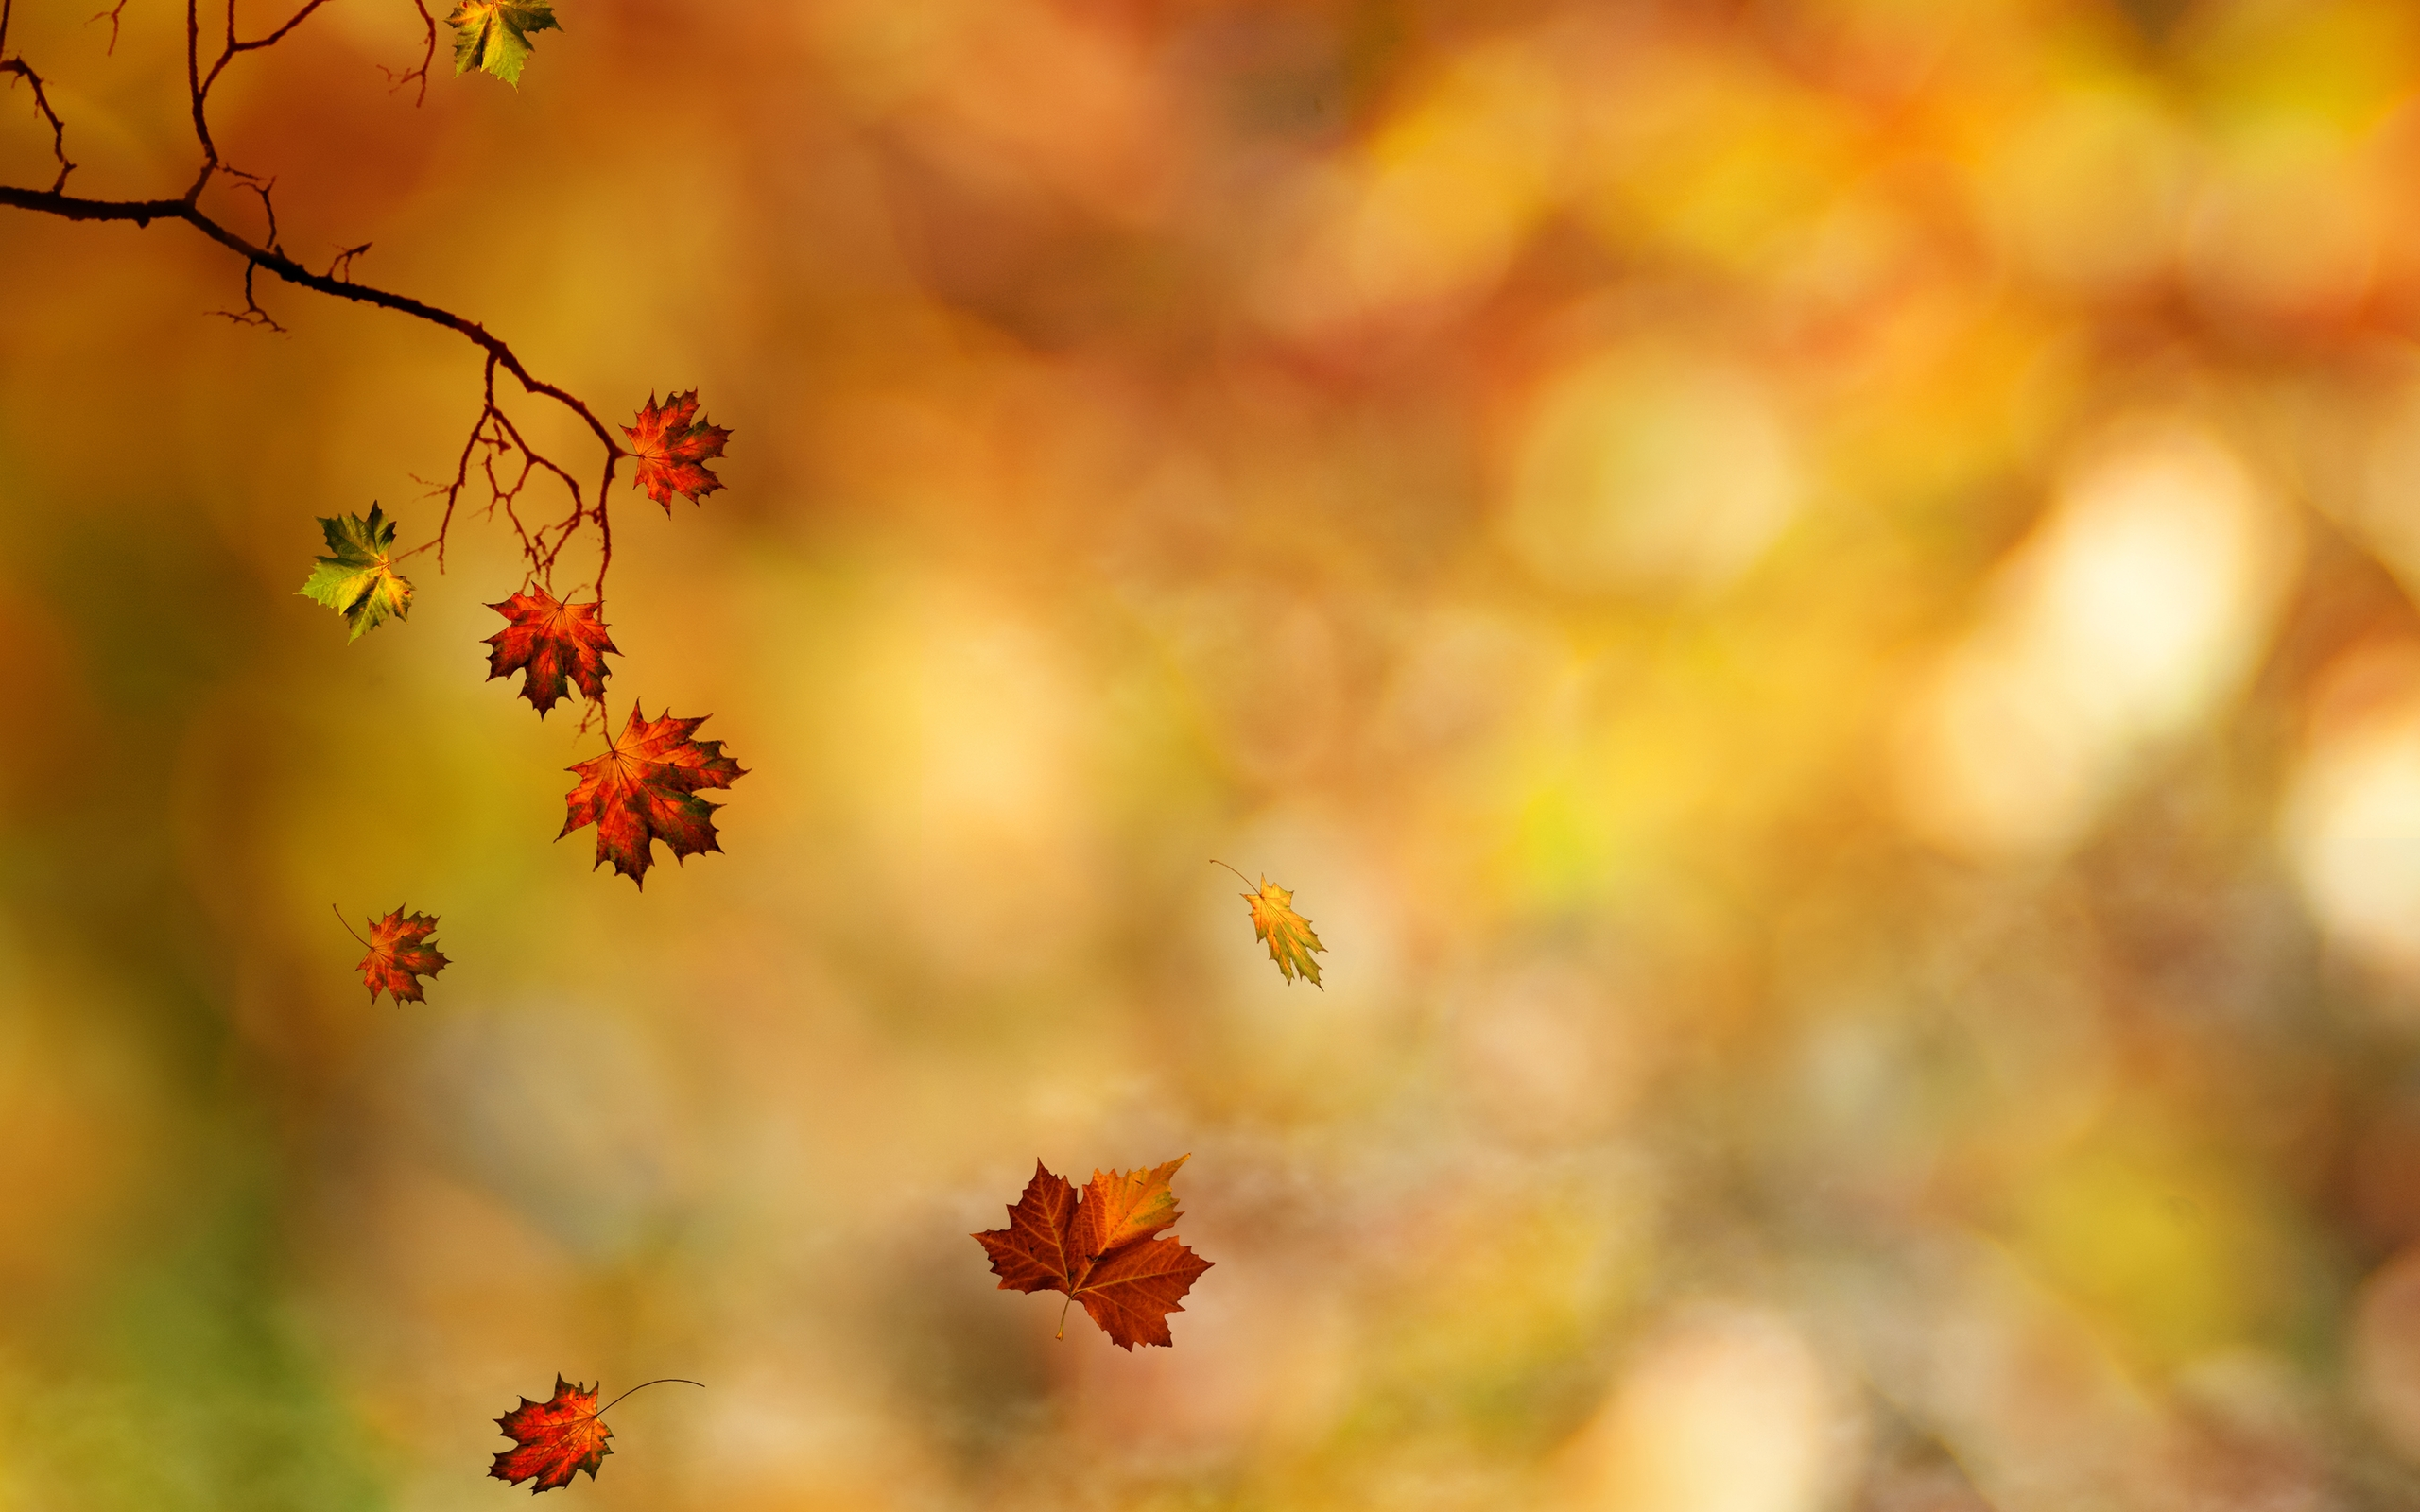 Falling Leaves Wallpaper For Iphone Leaf Hd Wallpaper Background Image 2560x1600 Id